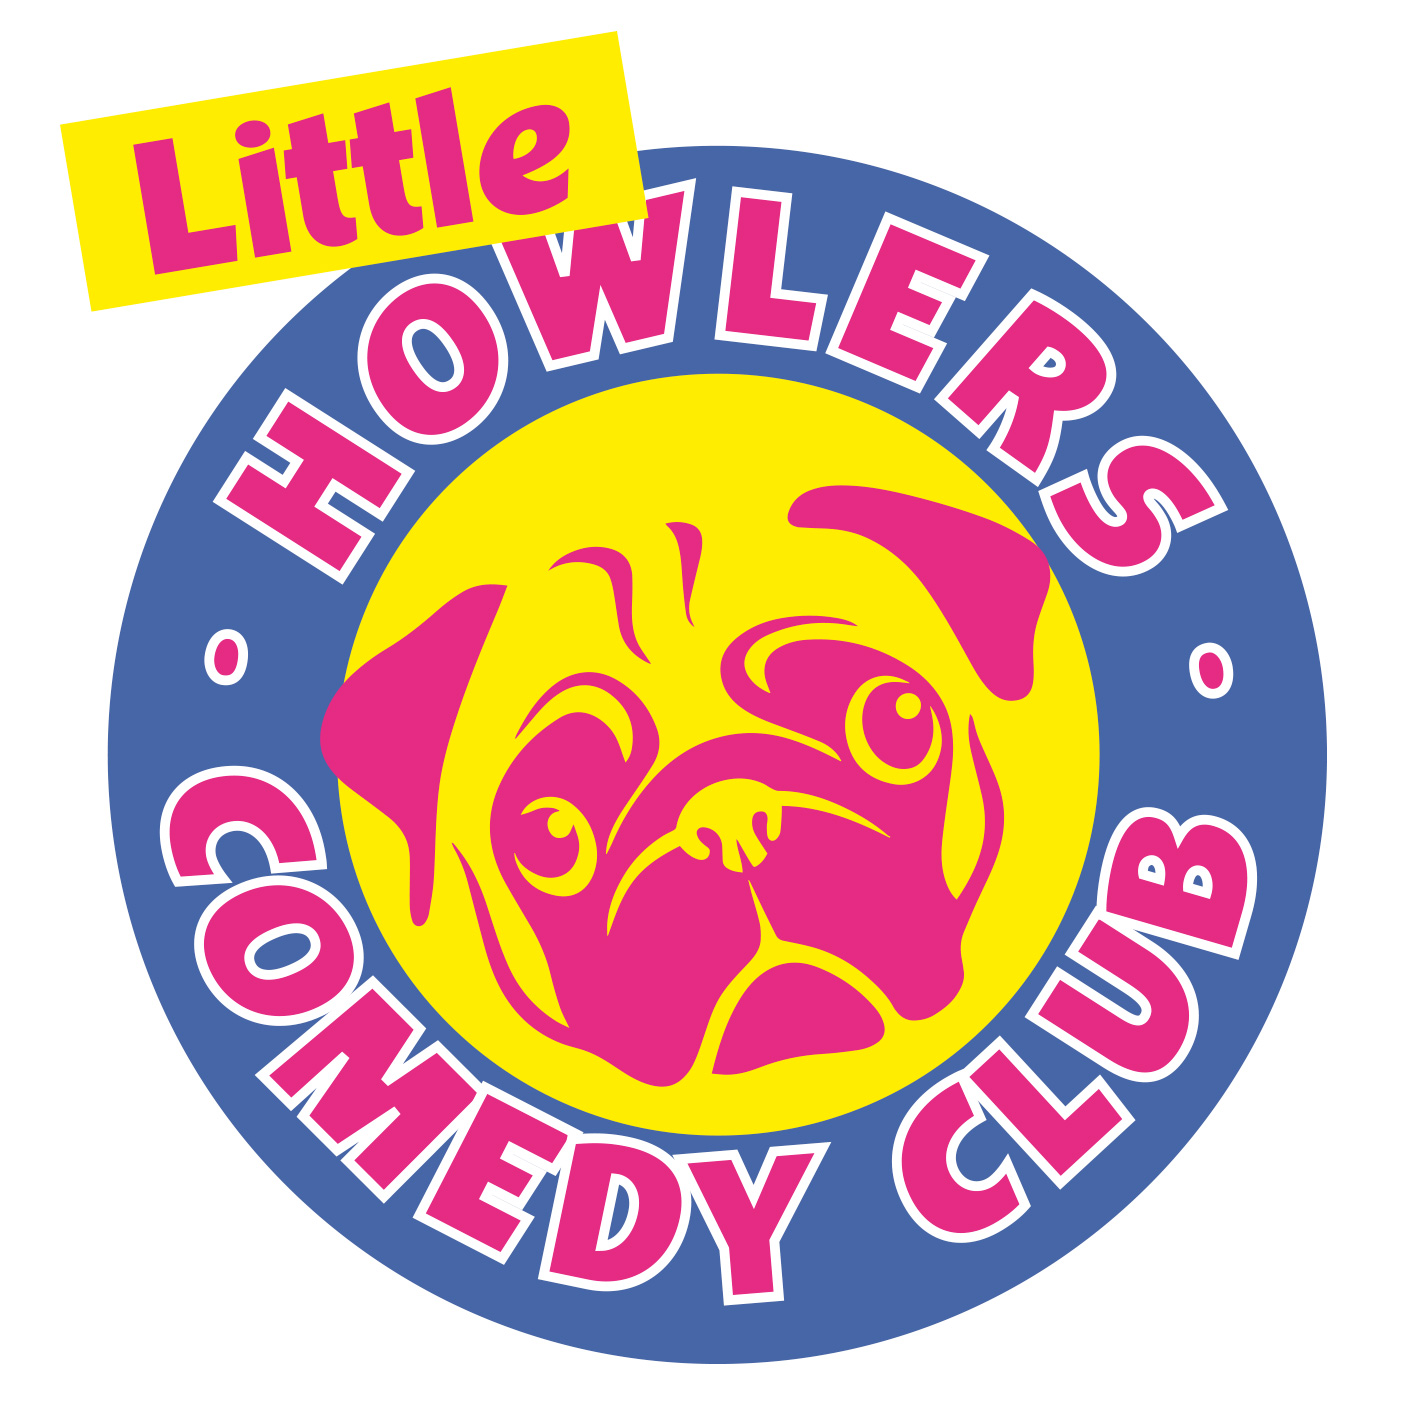 Little Howlers Comedy Club banner image